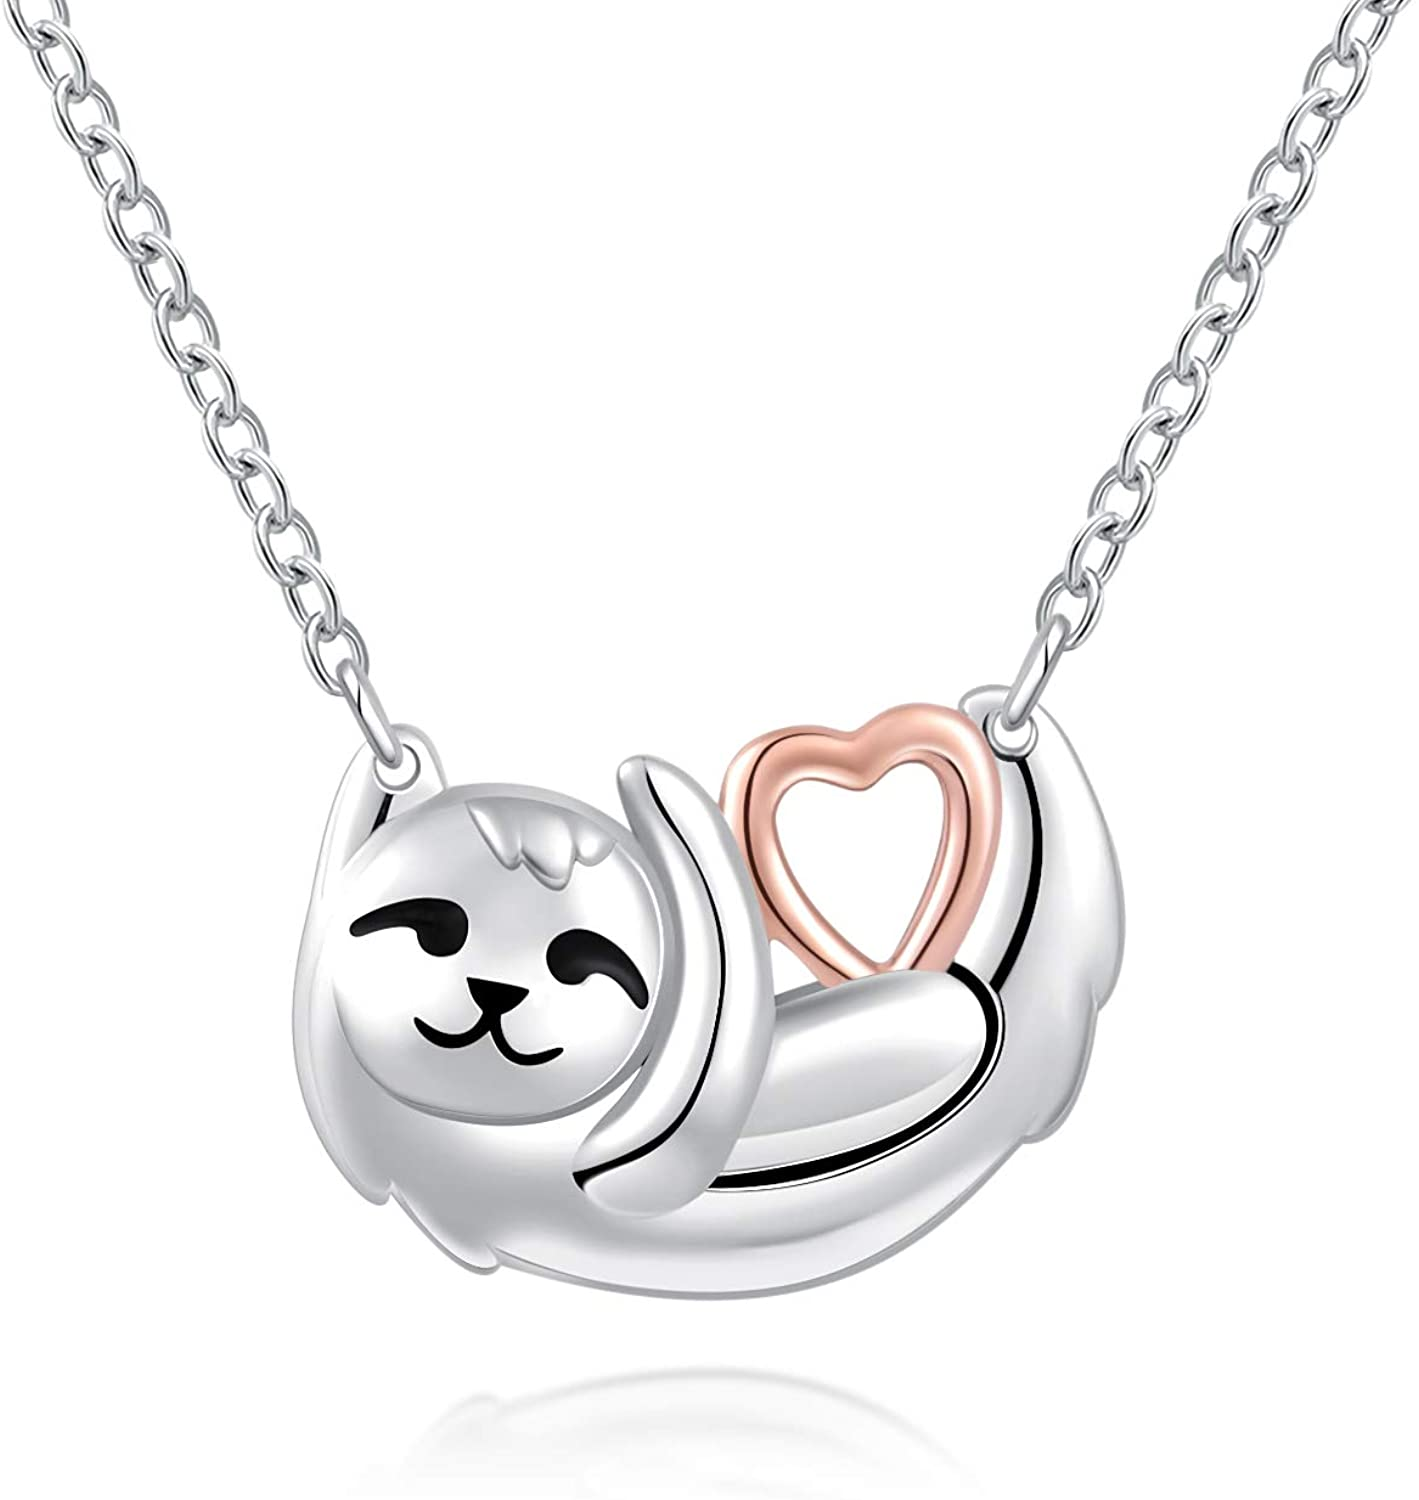 ACJFA Sloth Necklace 925 Sterling Silver Cute Sloth Hold Heart Pendant Necklace Animal Jewelry for Teen Girls Birthday Gifts for Women